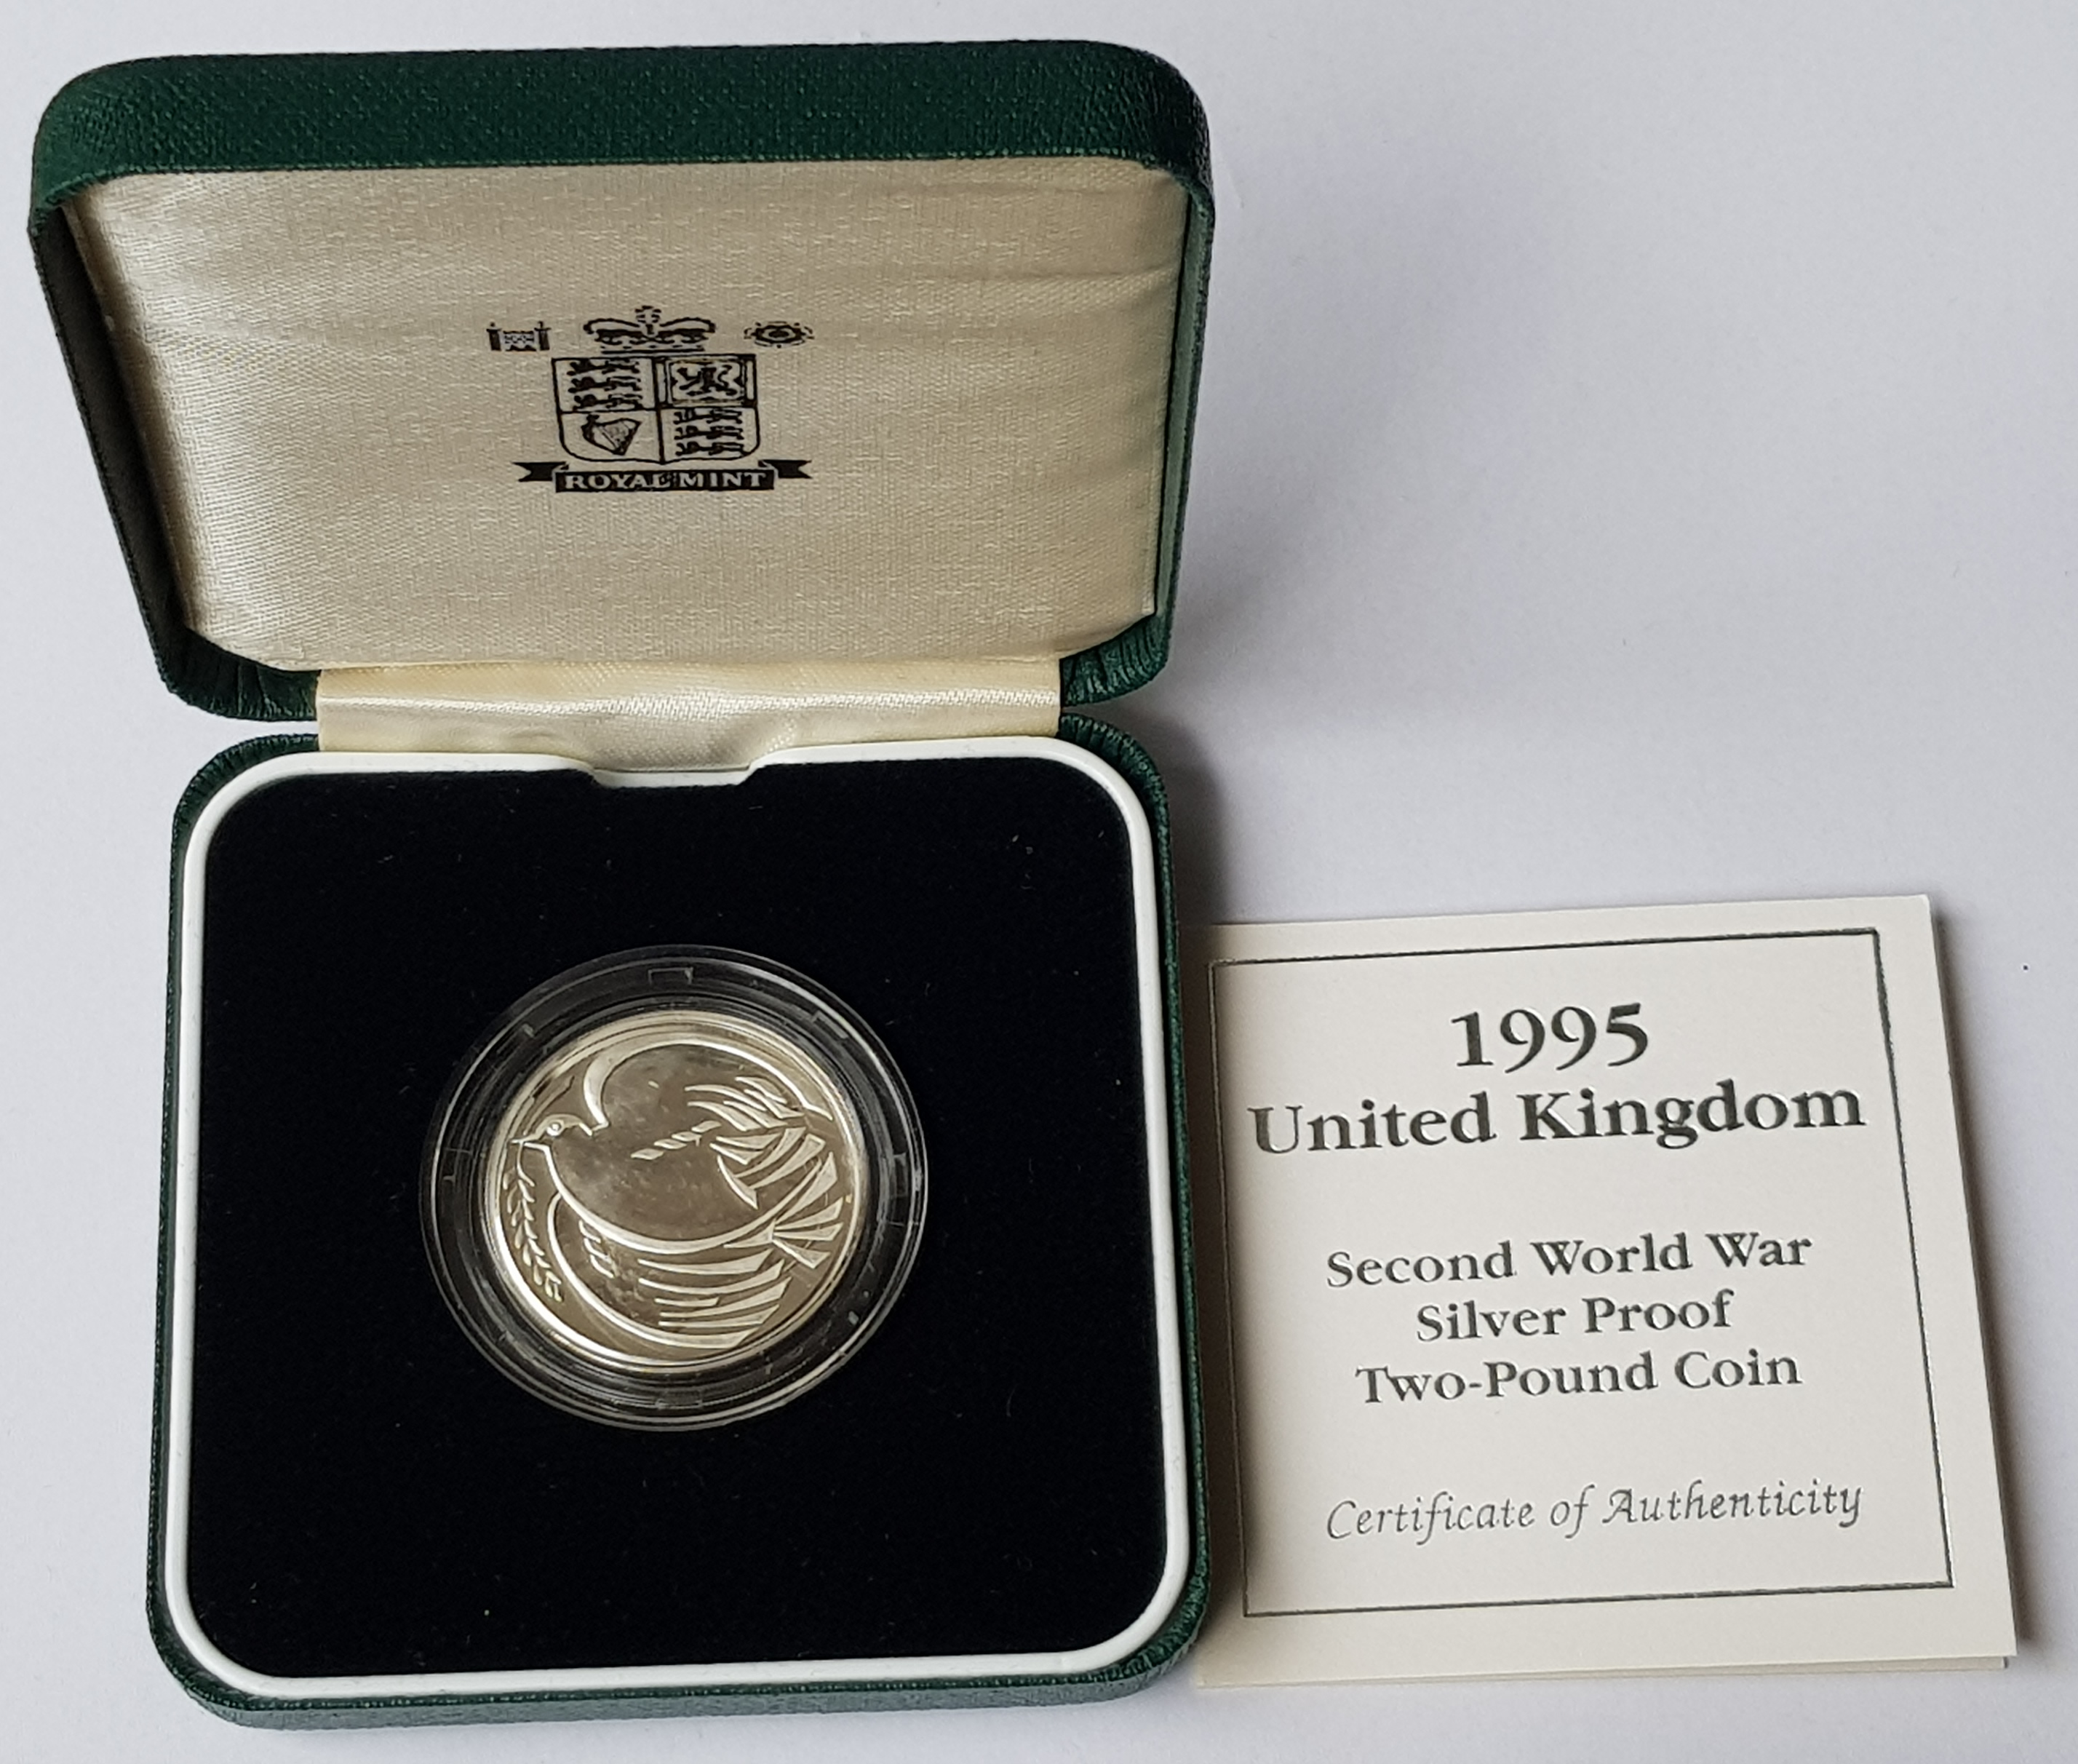 1995 United Kingdom Second World War Silver Proof 2 Coin